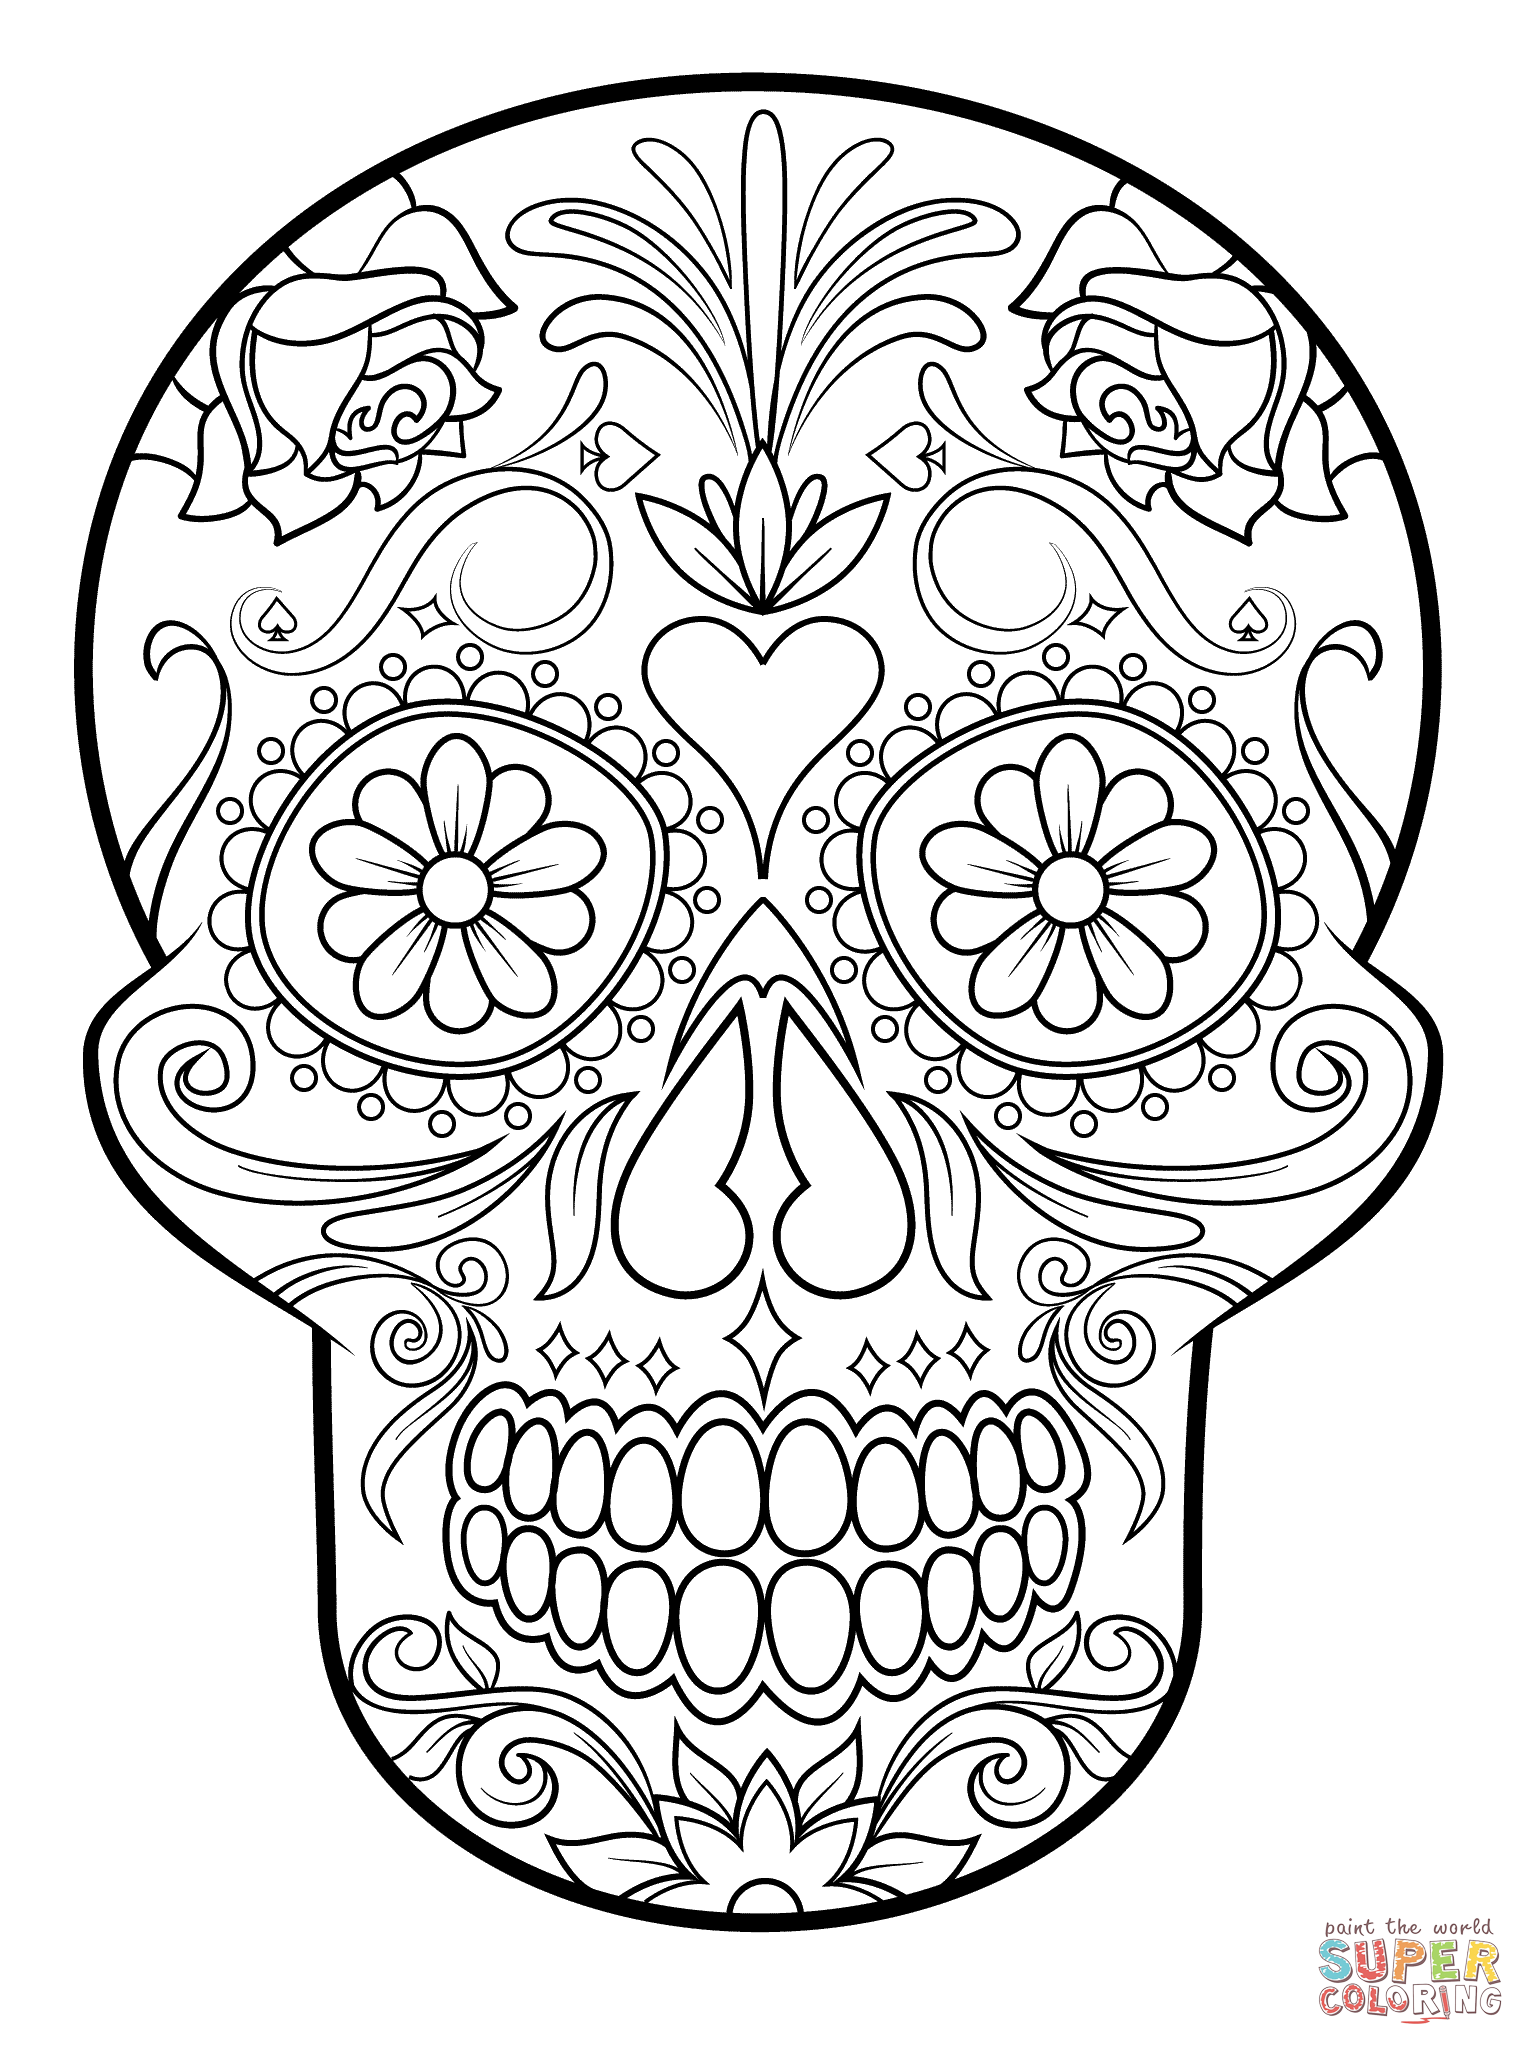 Sugar Skull | Super Coloring | Creativ | Pinterest | Zuckerschädel ...